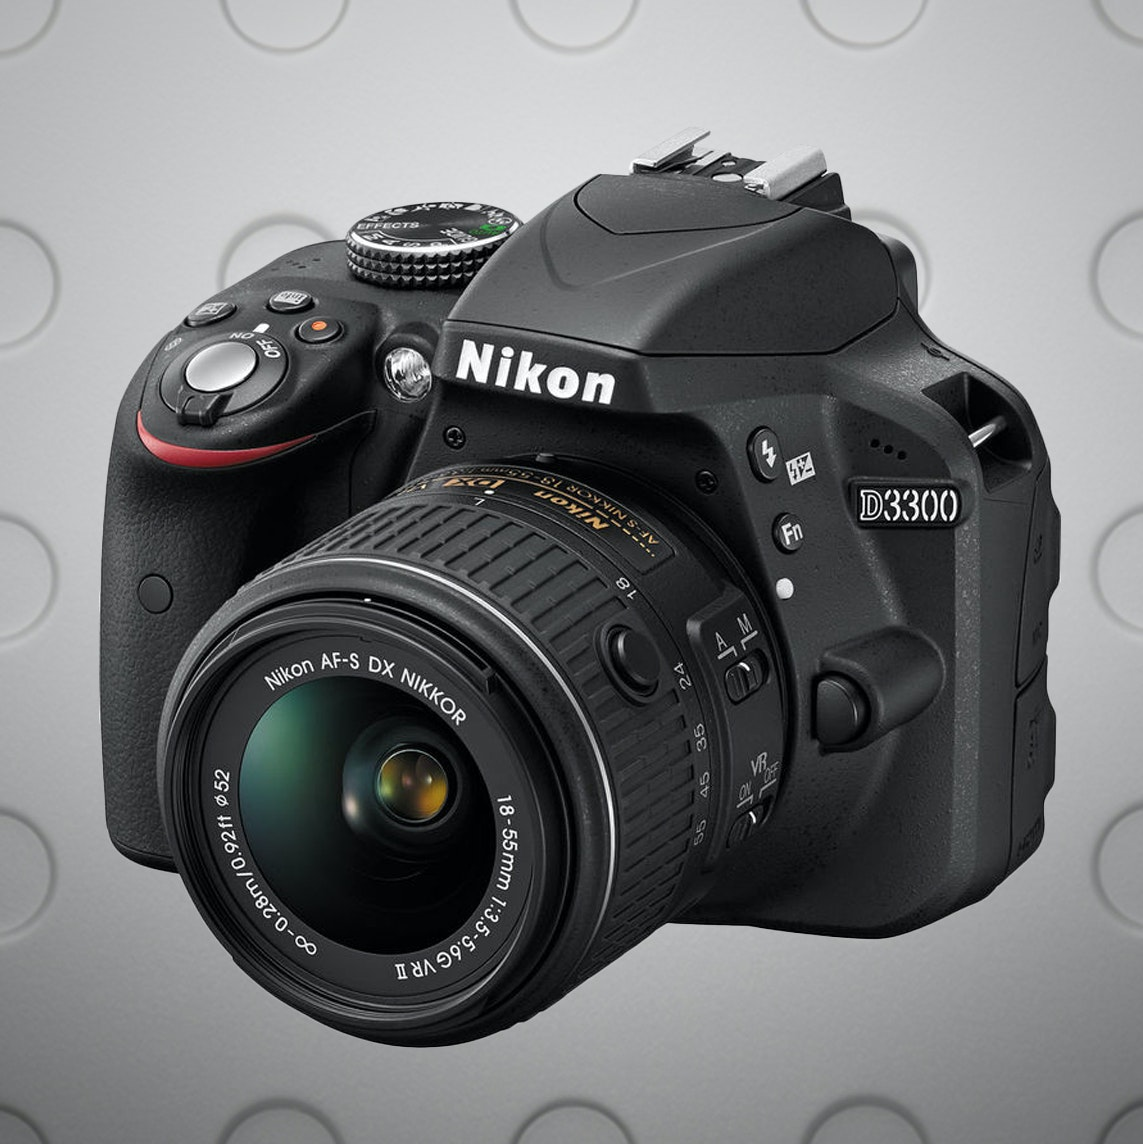 Nikon D3300 DSLR Camera with 18-55mm VRII (Black)